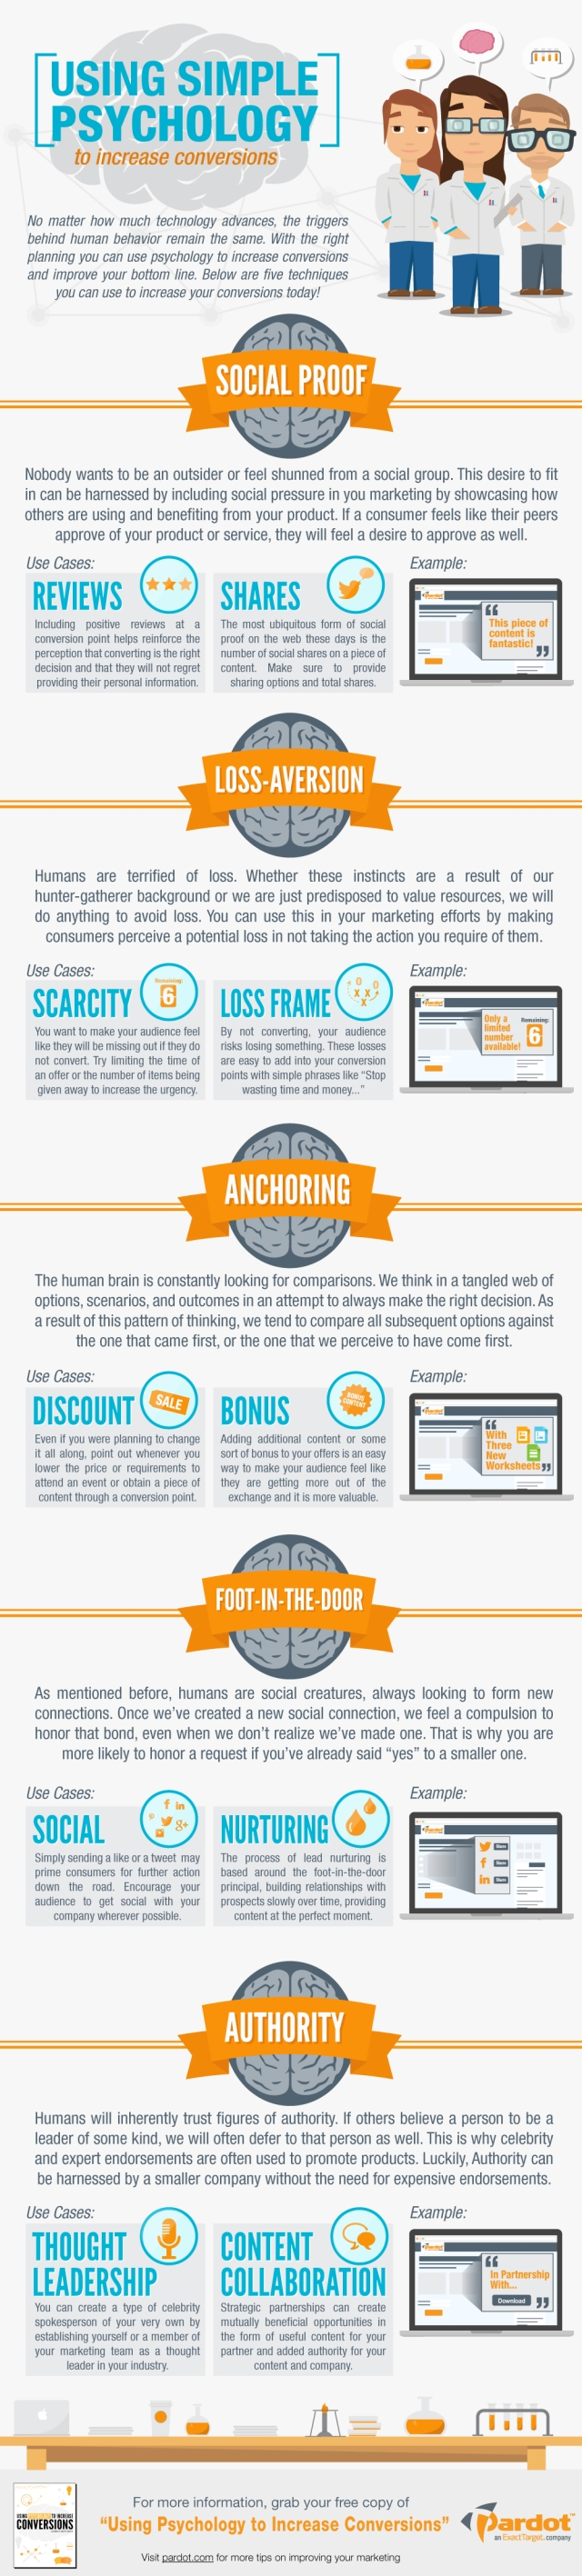 The Psychology of Website Design How to Increase Visitor Conversions